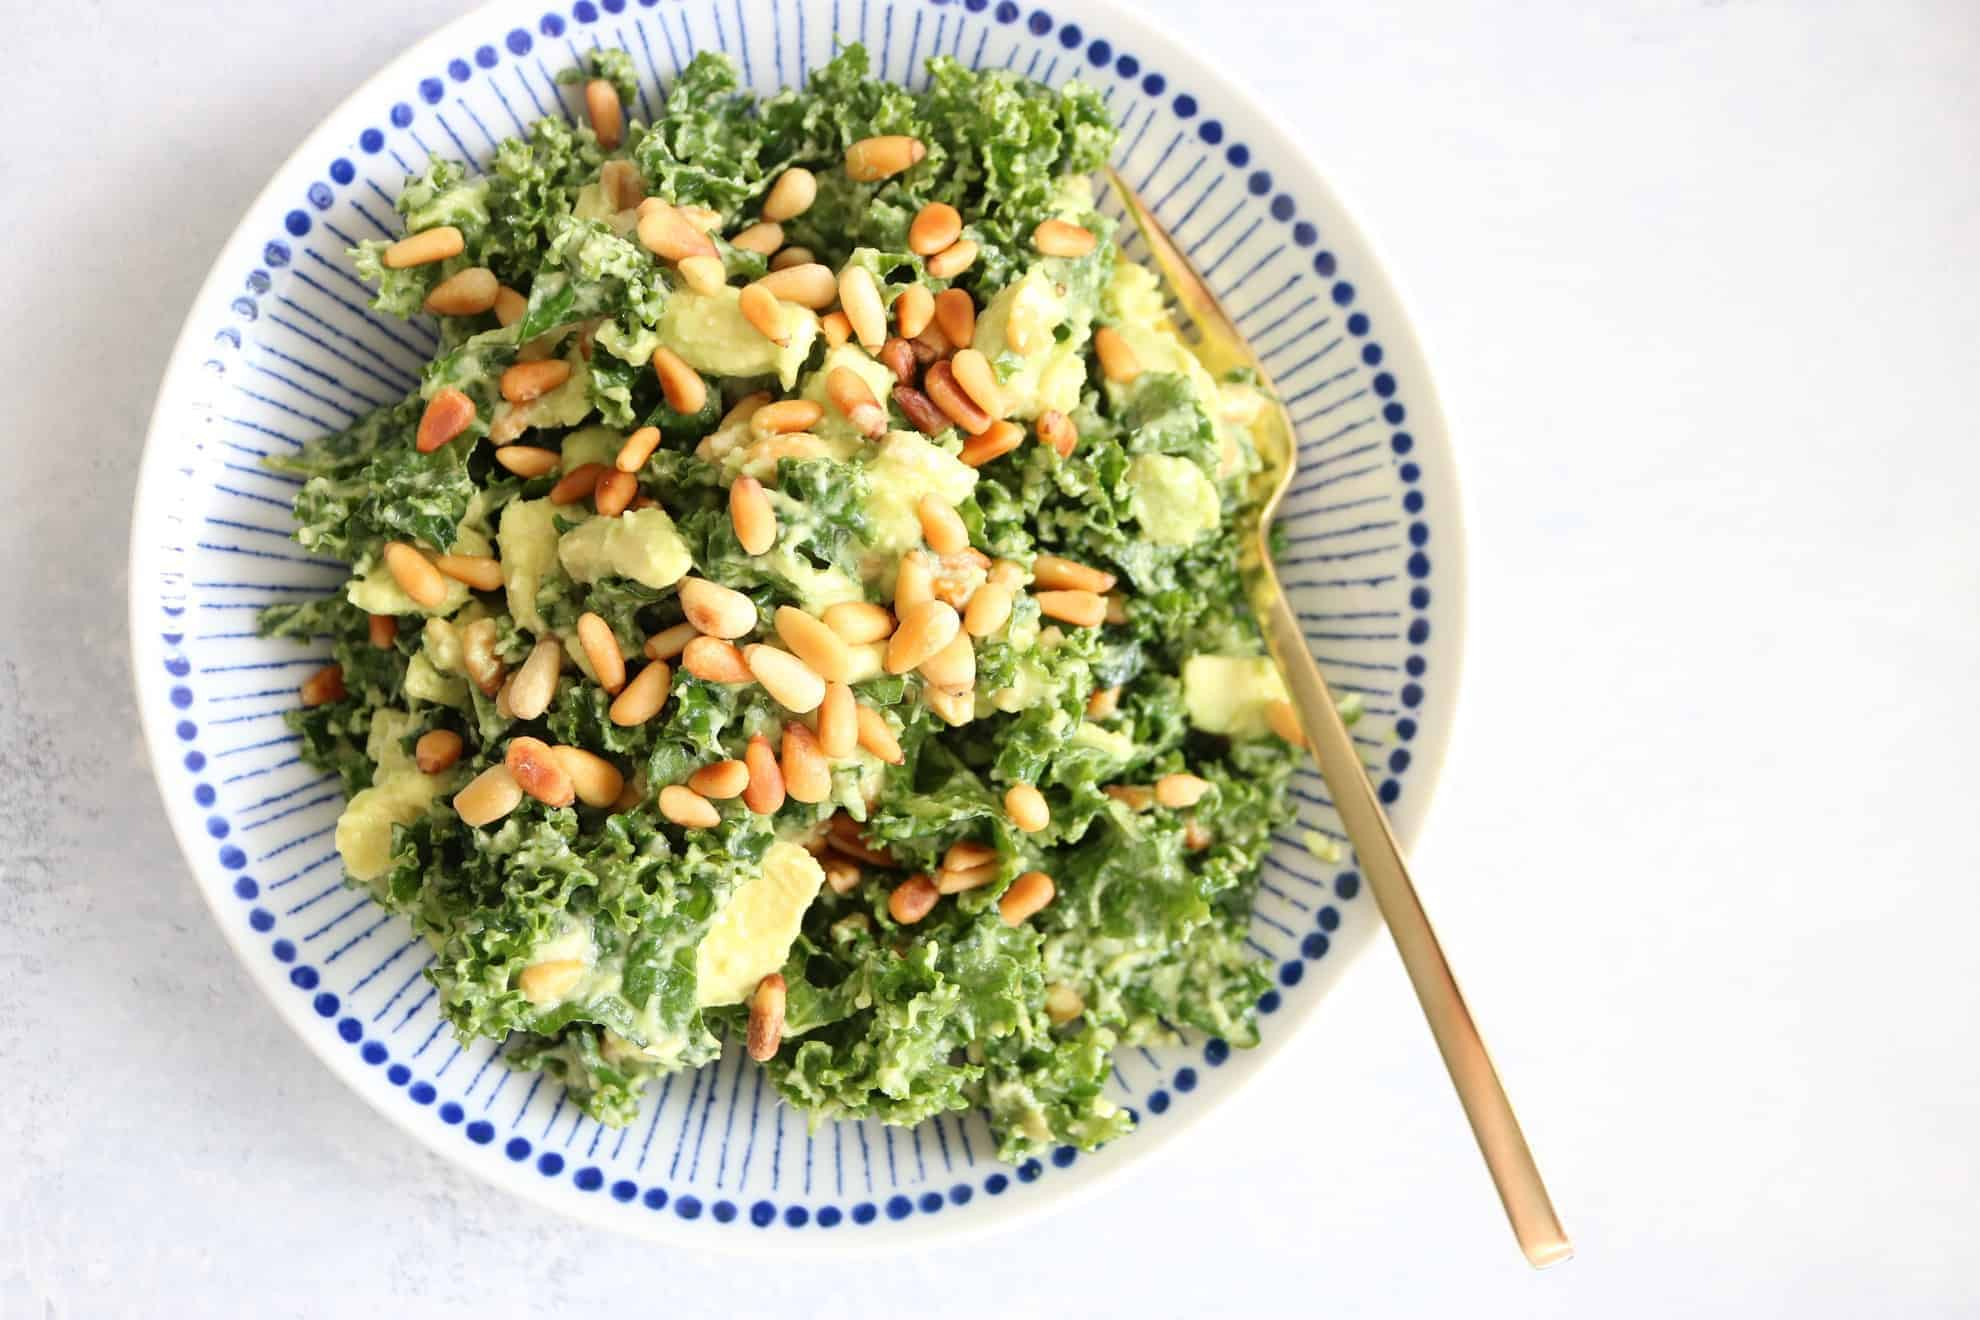 Lemon + Avocado Kale Salad